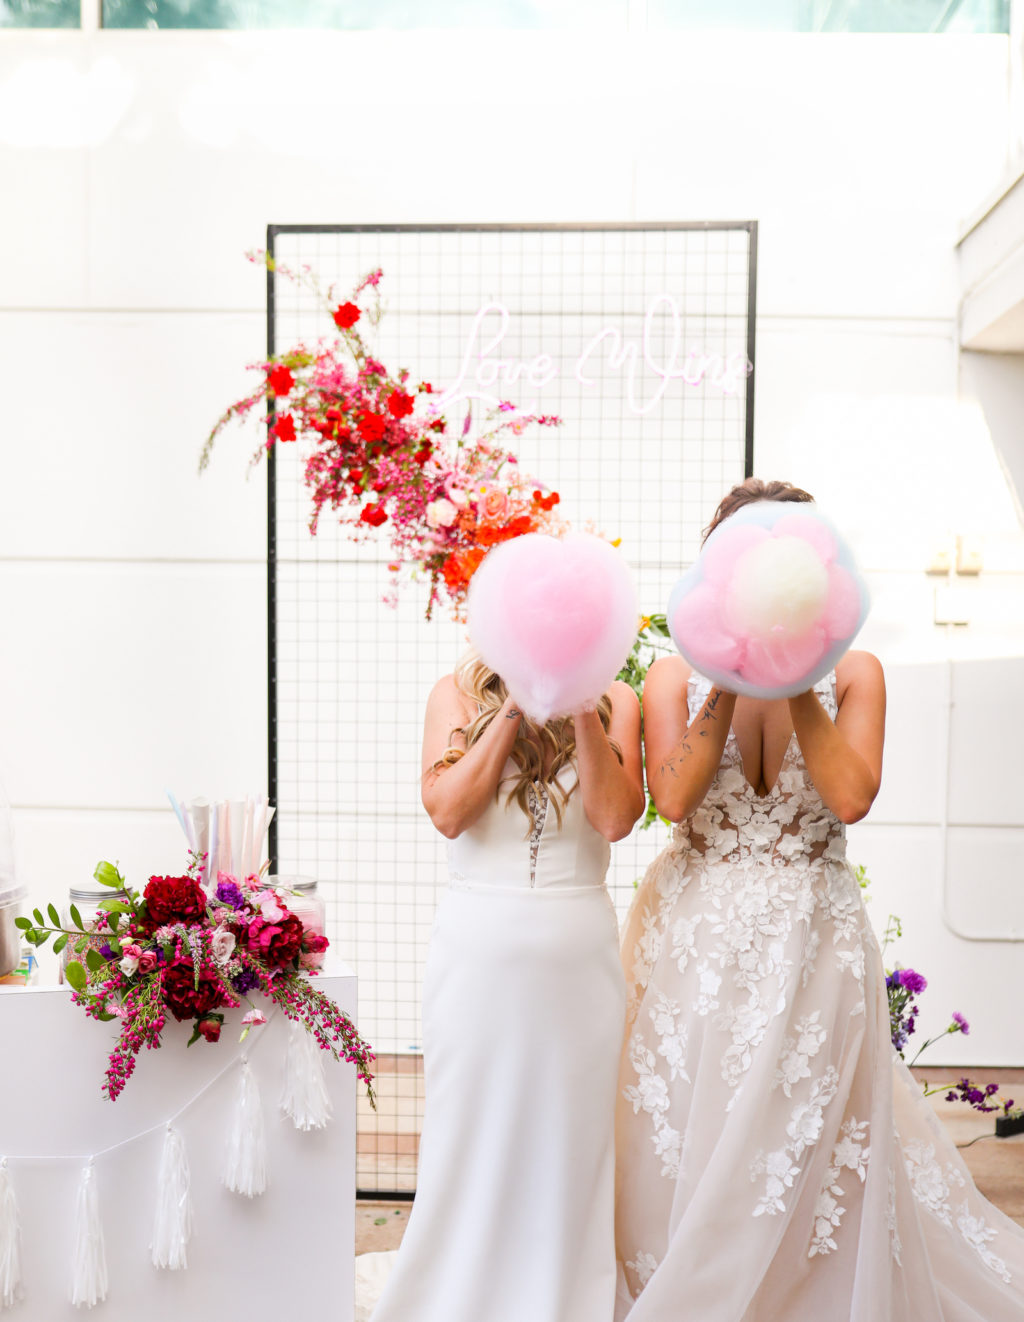 Modern Gay LGBTQ+ Pride Wedding, Lesbian Brides Holding Pink Cotton Candy, Rectangle Black Mesh Grid Arch with Colorful Rainbow Flower Arrangements   Tampa Bay Wedding Planner Stephany Perry Events   Rooftop Wedding Venue Hotel Alba